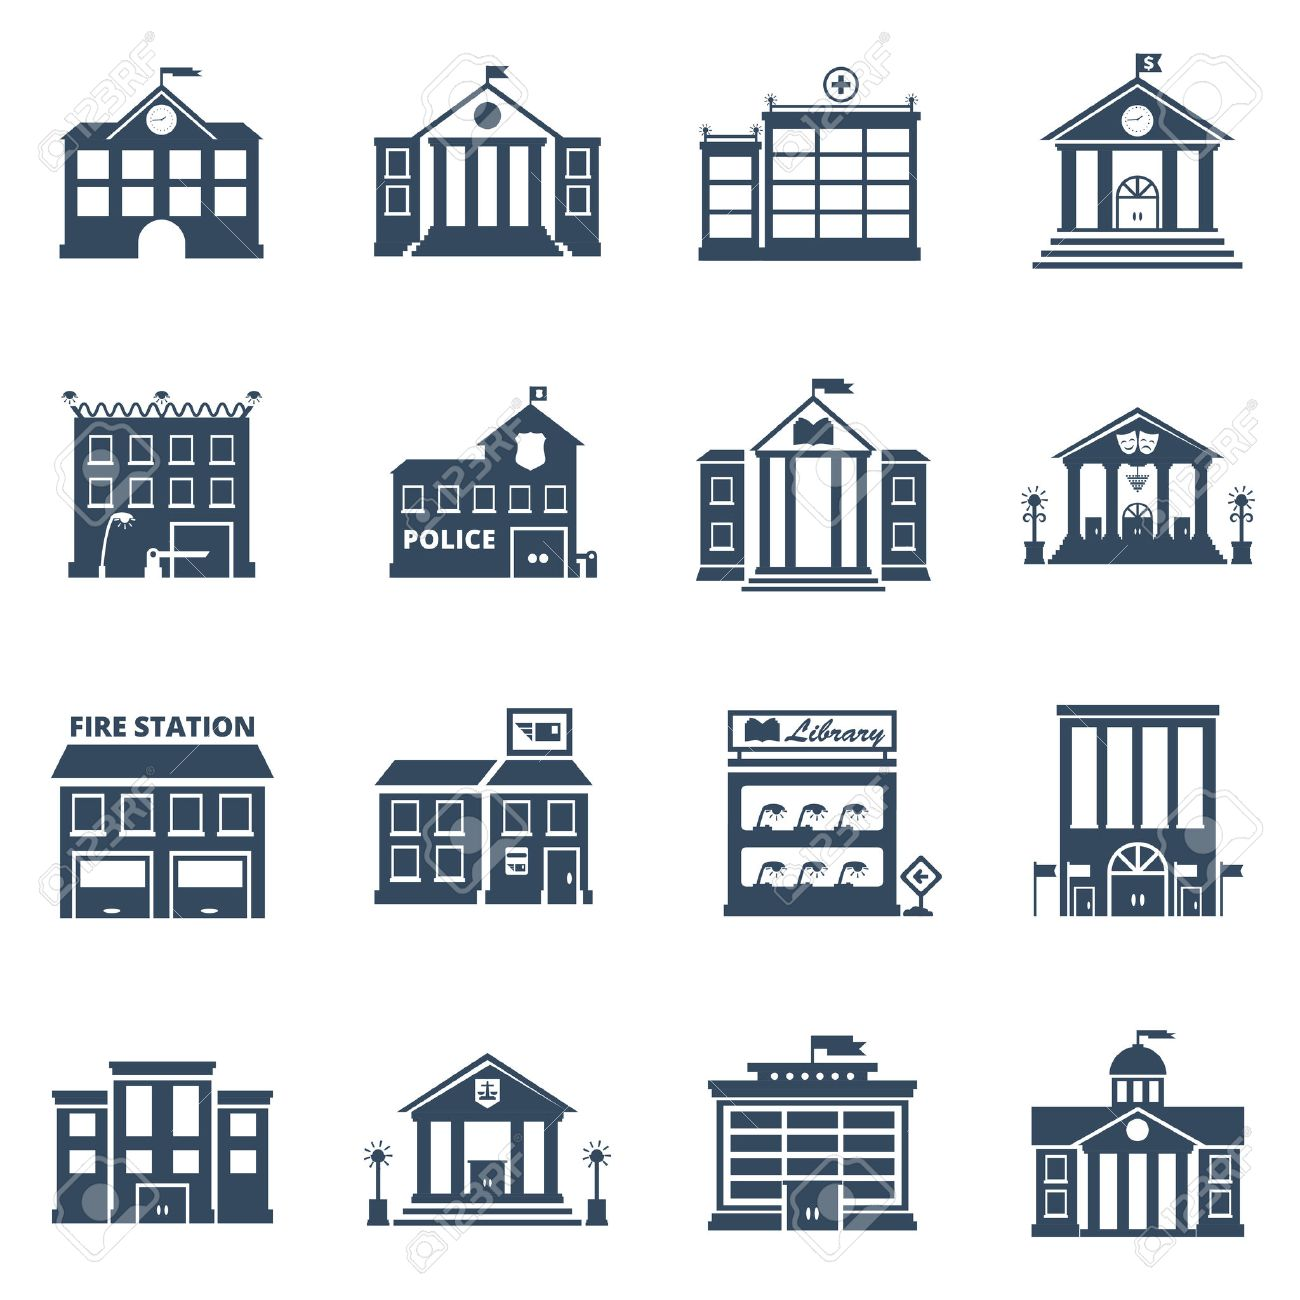 Government building black icons set of fire station library prison post office isolated vector illustration - 52695273